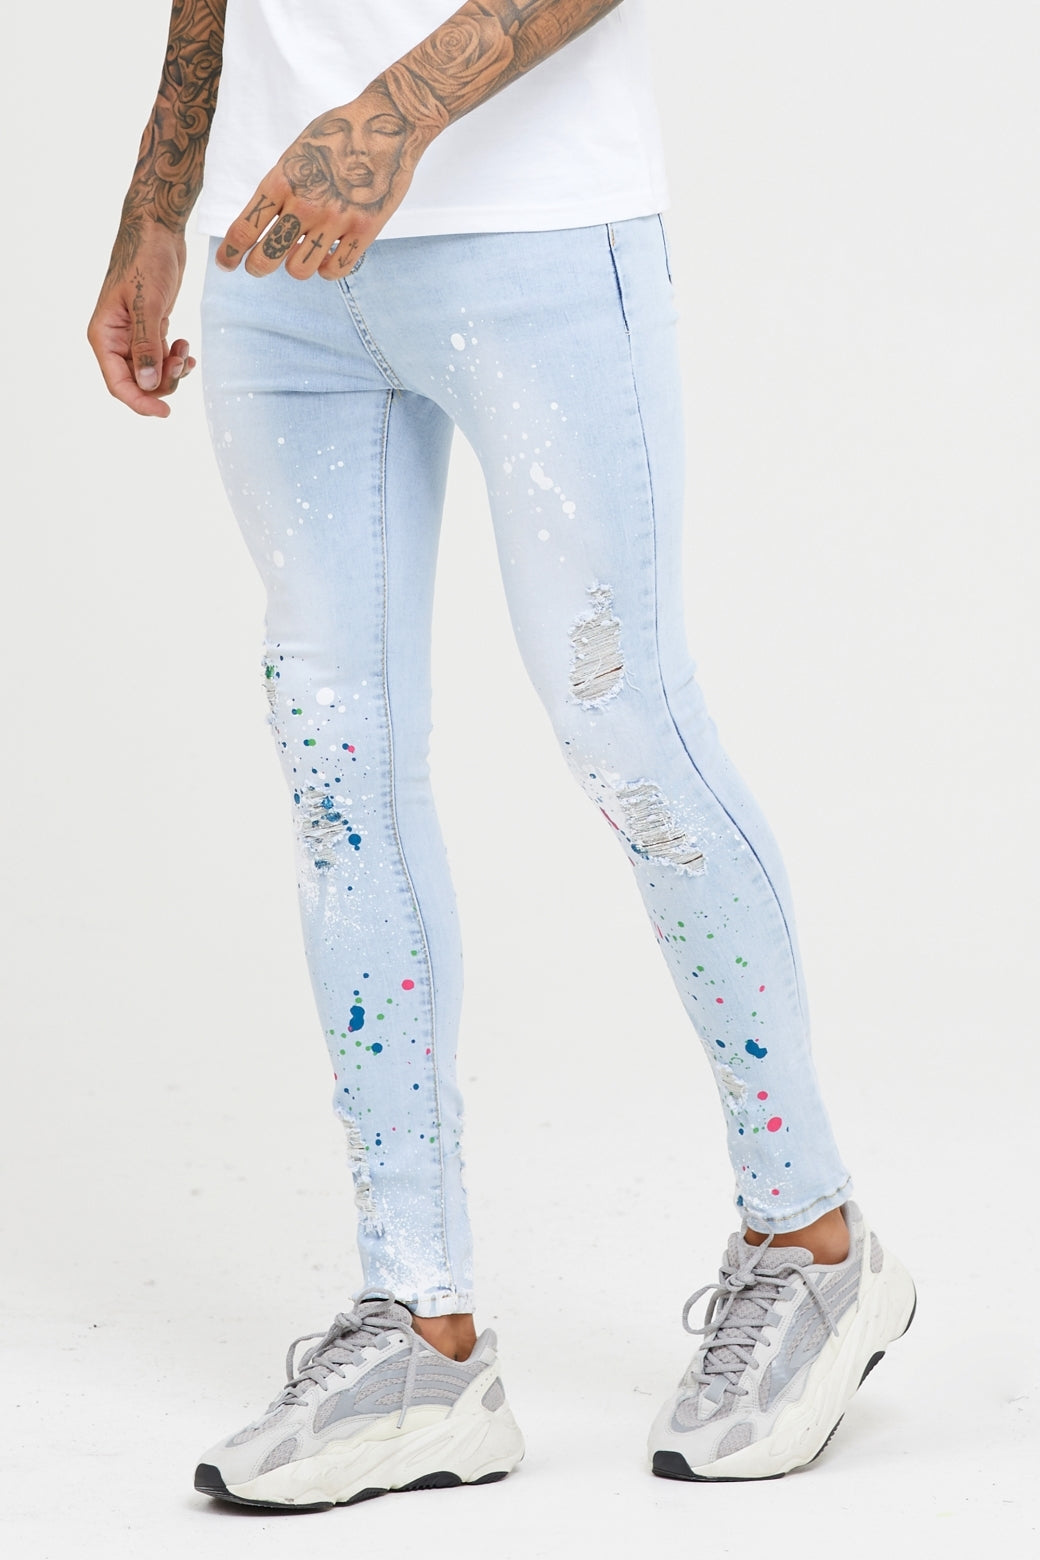 Diffusion Light Blue Denim - ZANMODA